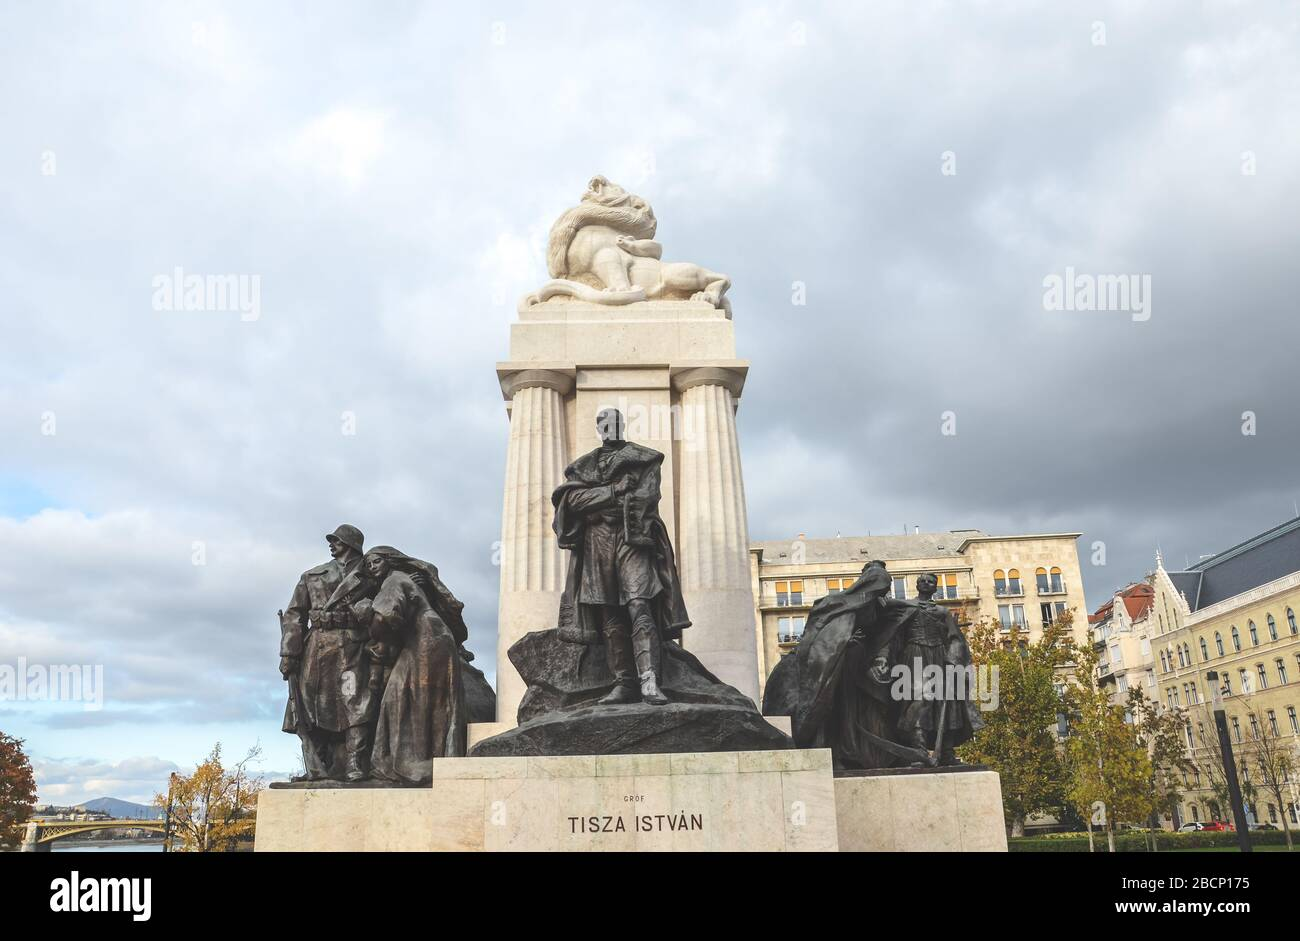 Budapest, Hungary - Nov 6, 2019: Istvan Tisza Monument in the Hungarian capital. Statue complex with sculpture of Hungarian politician and prime minister from the Austria-Hungary era in the middle. Stock Photo